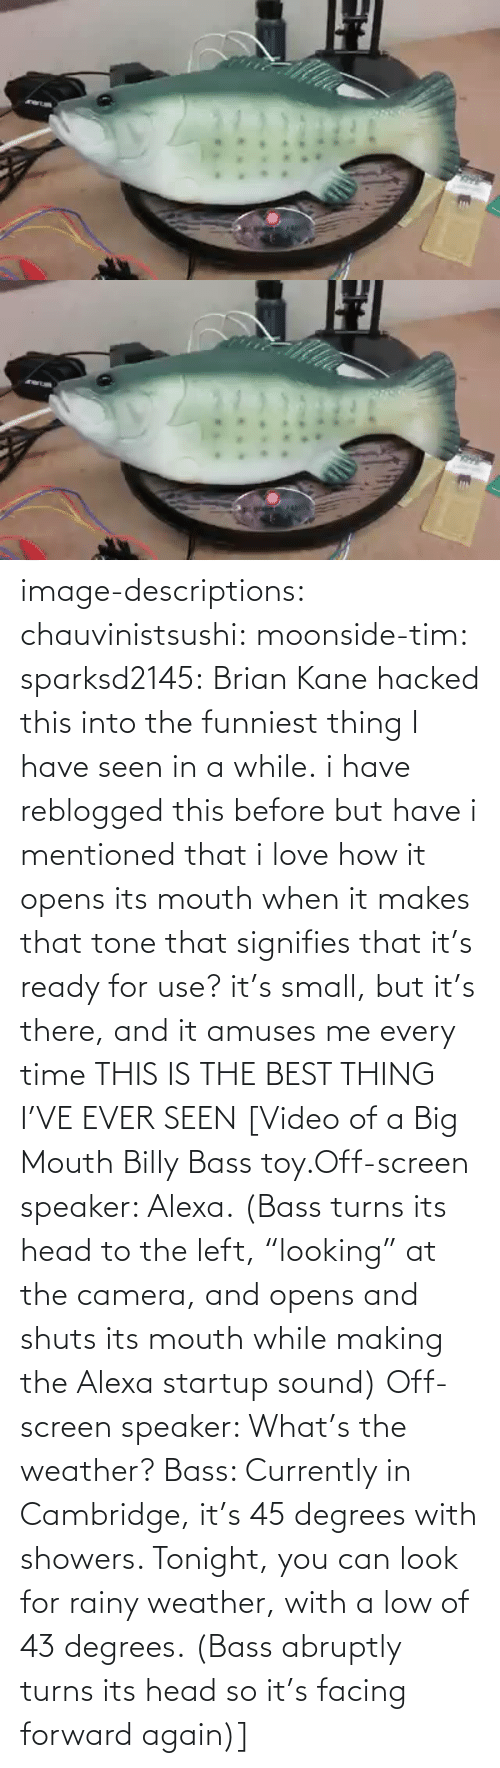 "kane: image-descriptions:  chauvinistsushi:  moonside-tim:  sparksd2145:  Brian Kane hacked this into the funniest thing I have seen in a while.  i have reblogged this before but have i mentioned that i love how it opens its mouth when it makes that tone that signifies that it's ready for use? it's small, but it's there, and it amuses me every time  THIS IS THE BEST THING I'VE EVER SEEN  [Video of a Big Mouth Billy Bass toy.Off-screen speaker: Alexa. (Bass turns its head to the left, ""looking"" at the camera, and opens and shuts its mouth while making the Alexa startup sound)  Off-screen speaker: What's the weather? Bass: Currently in Cambridge, it's 45 degrees with showers. Tonight, you can look for rainy weather, with a low of 43 degrees. (Bass abruptly turns its head so it's facing forward again)]"